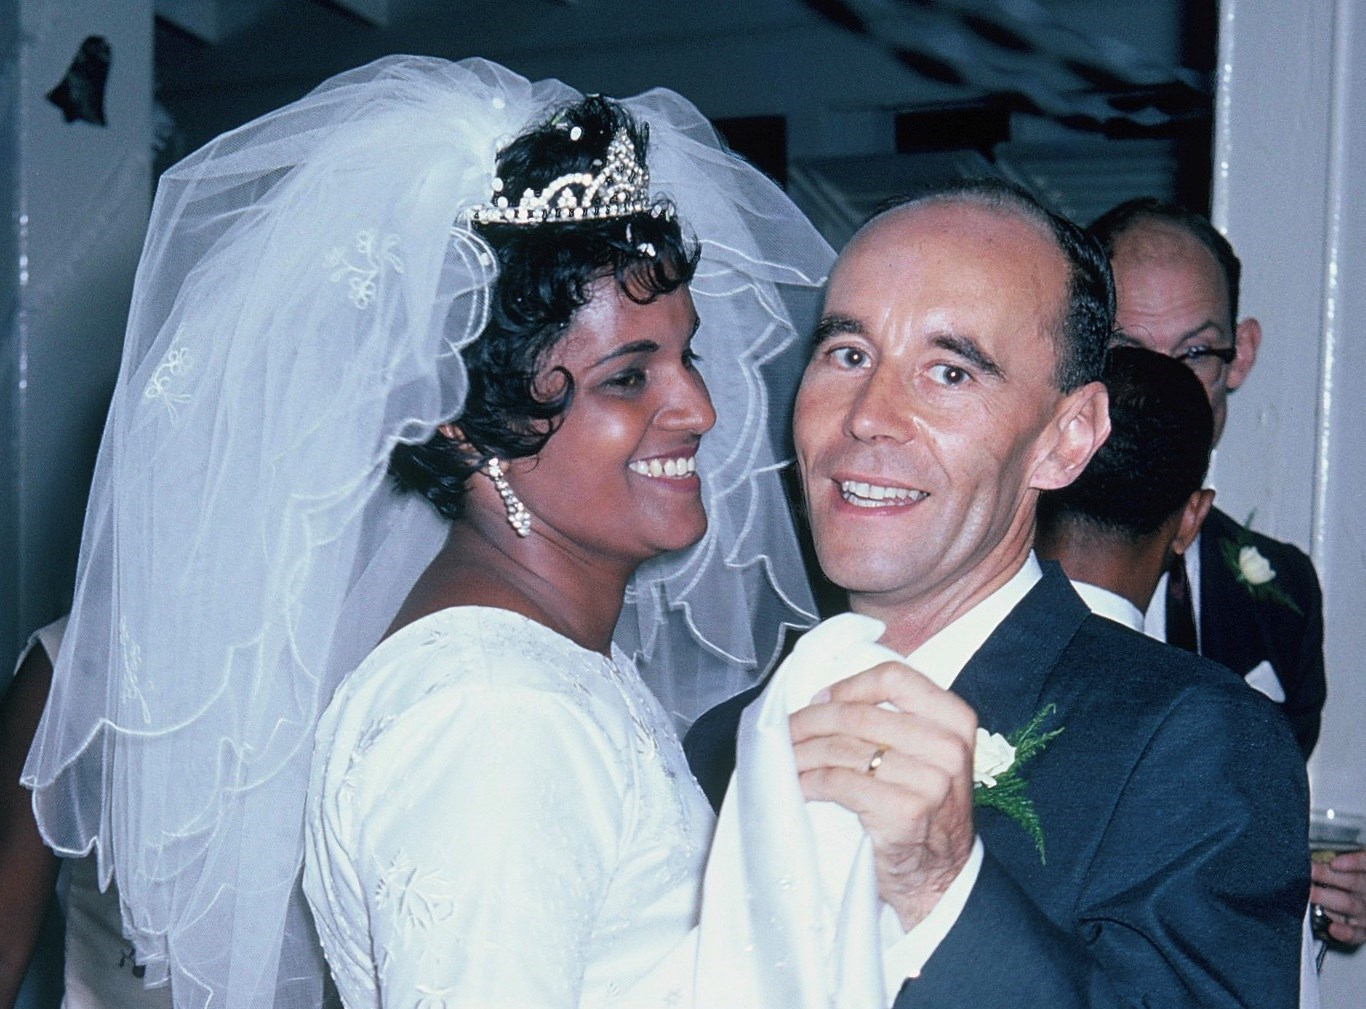 Jim with Gloria on their wedding day, 8th October 1966, Georgetown, Guyana